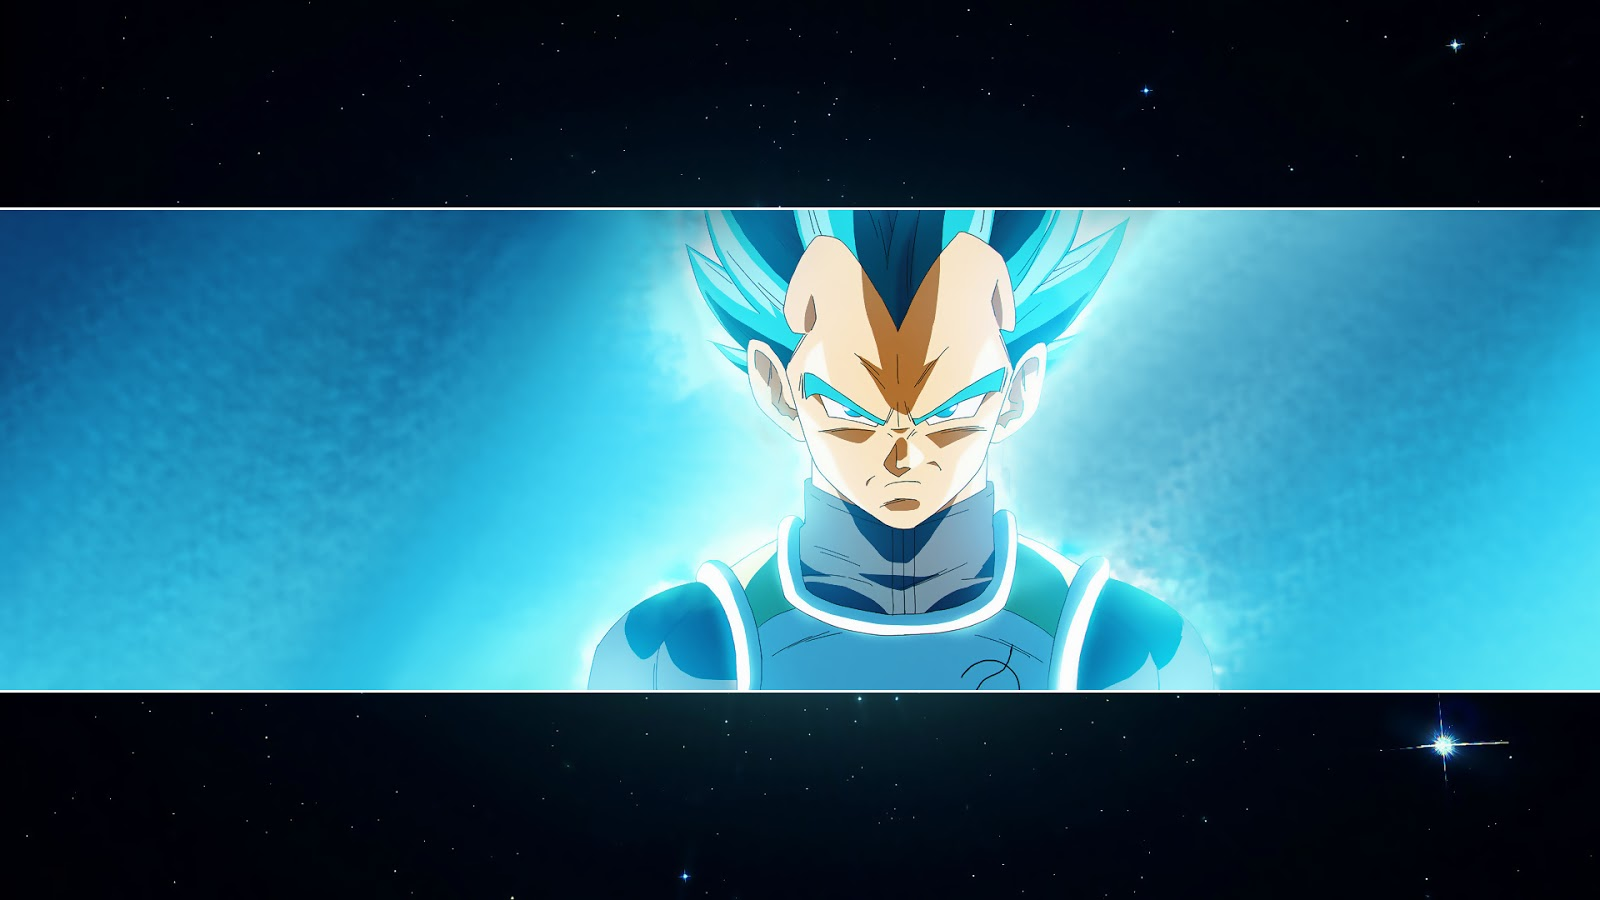 50 Hd Dragon Ball Z Wallpapers 1920x1080 2020 Www Movierulz